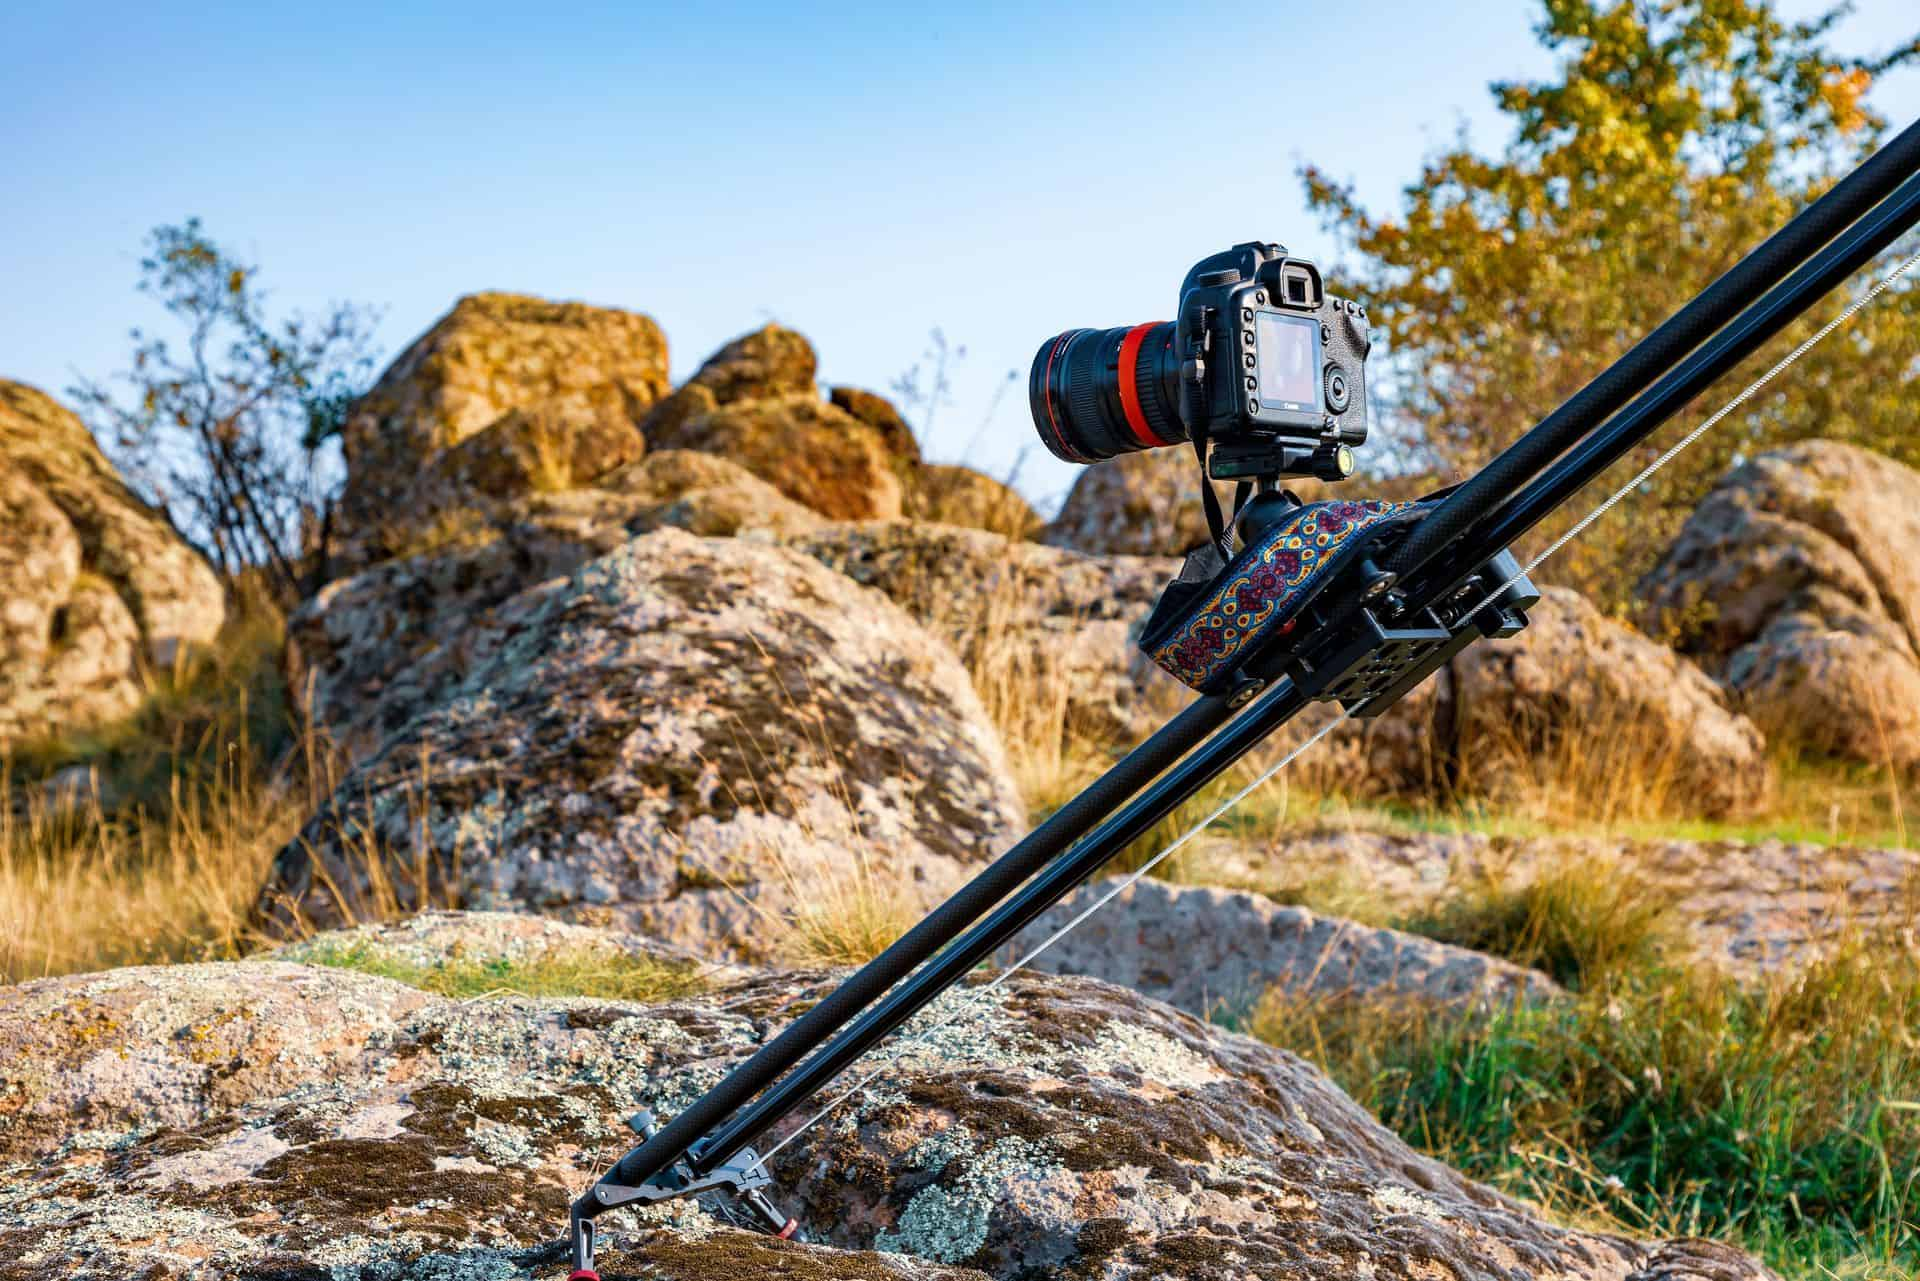 What Is the Best Length for a Camera Slider?